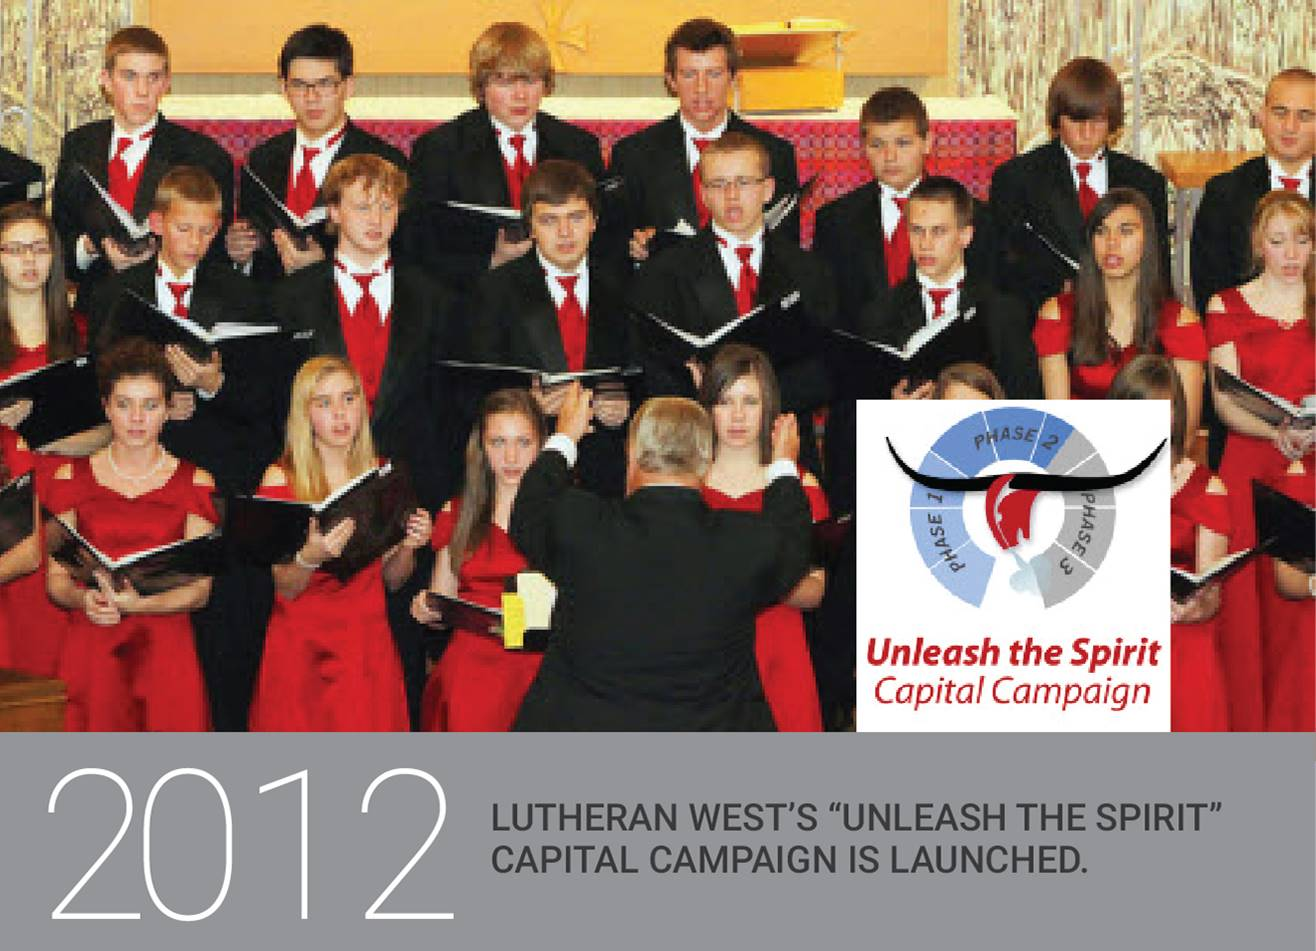 History-2012-Unleash-the-Spirit-Campaign